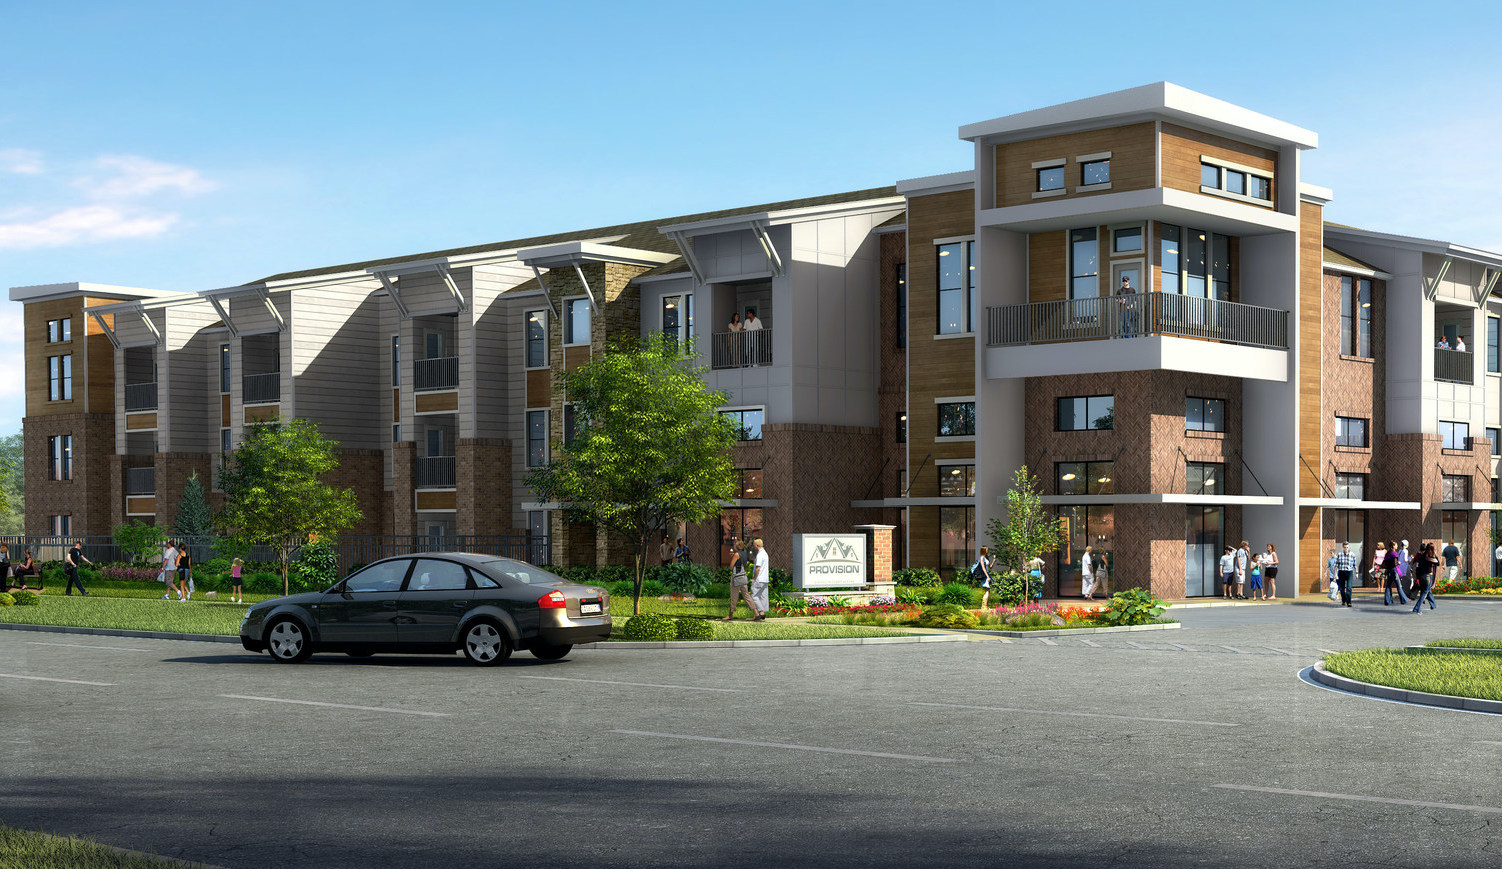 Gardner Capital Partners with City of Fate to Expand Senior Housing with Development of 185-Unit Mixed-Income Community